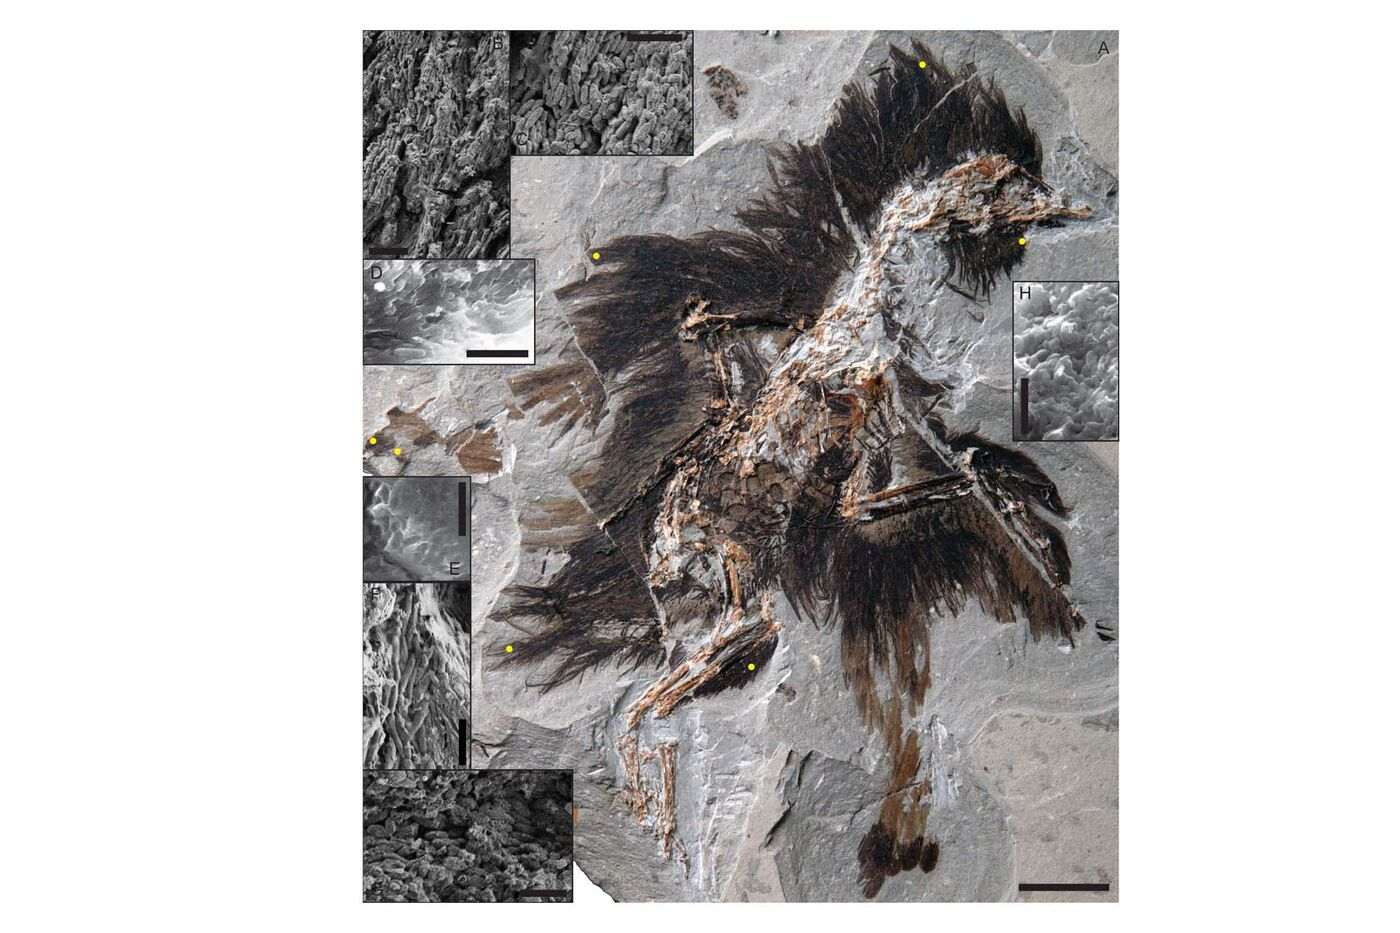 Image of a fossilized, feathered dinosaur.